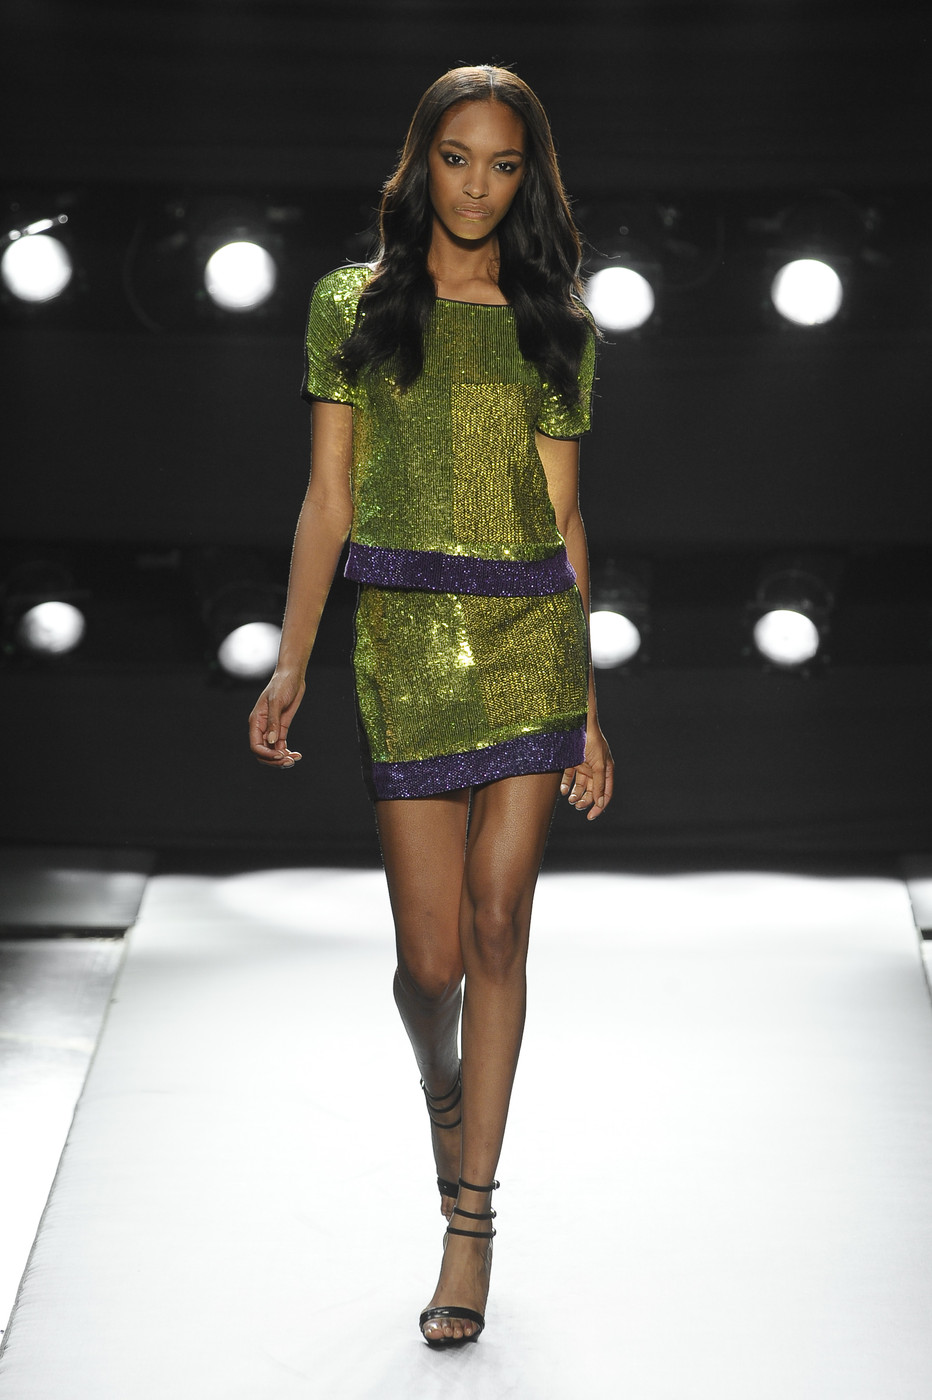 via fashioned by love | Gianfranco Ferre Spring/Summer 2011 | green